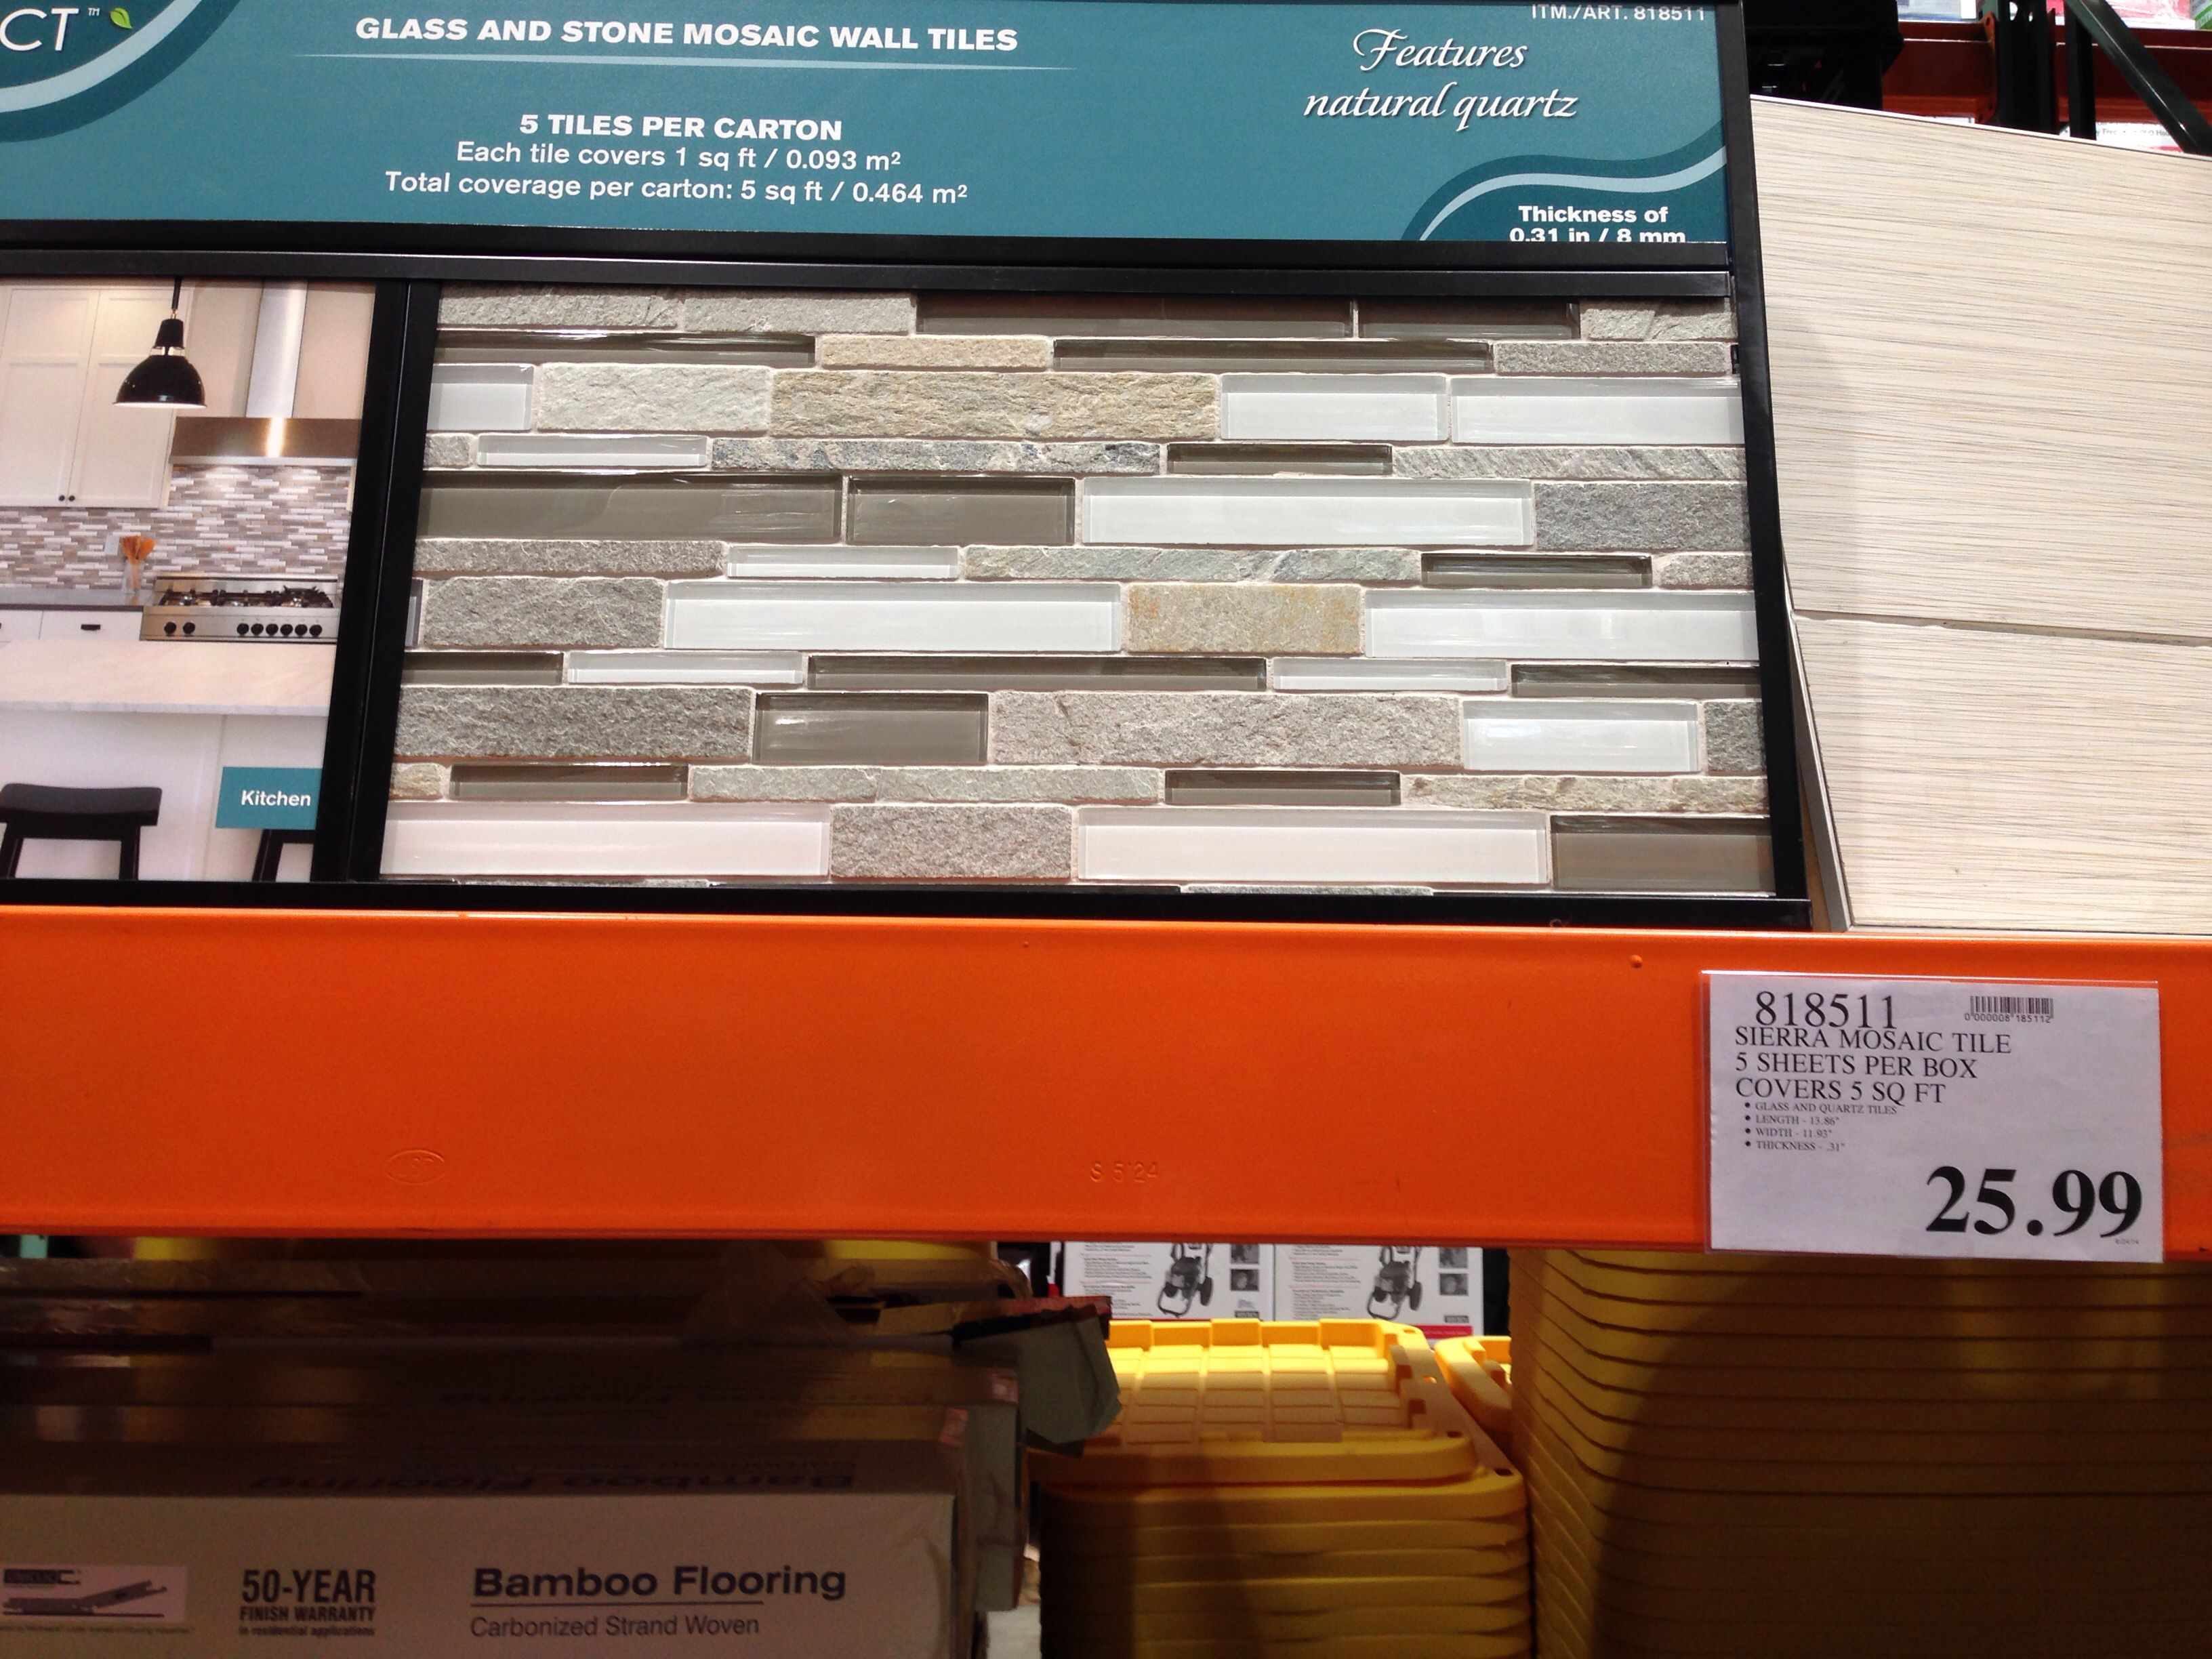 Costco Mosaic Tile For Backsplash With Images Stone Mosaic Wall